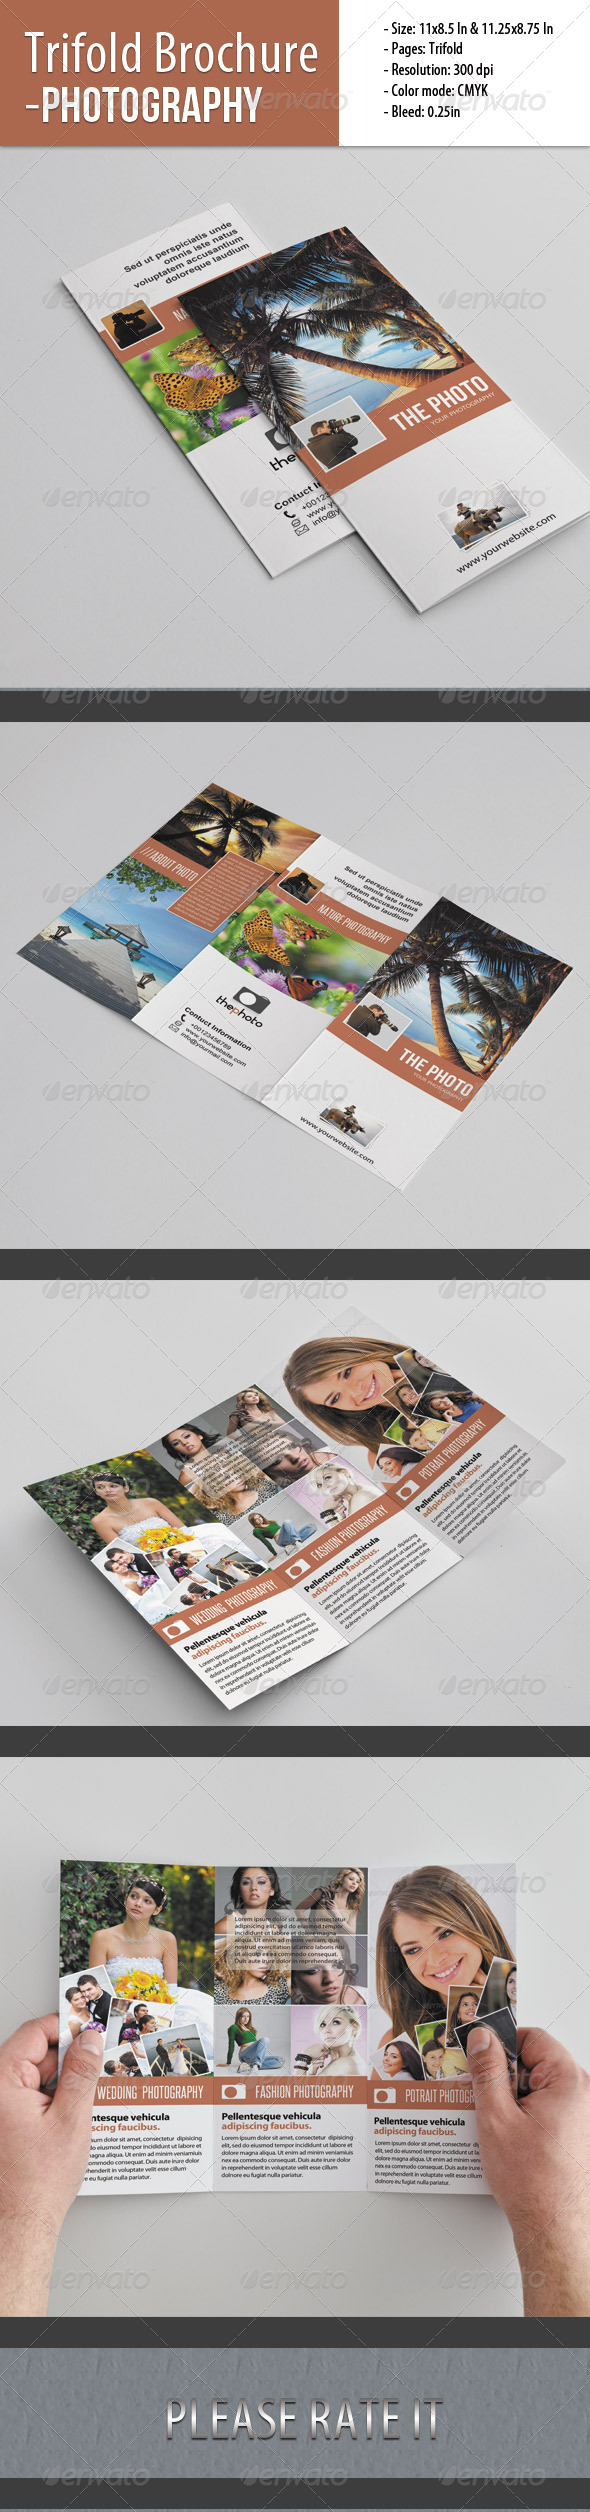 Trifold Brochure For Photography - Portfolio Brochures